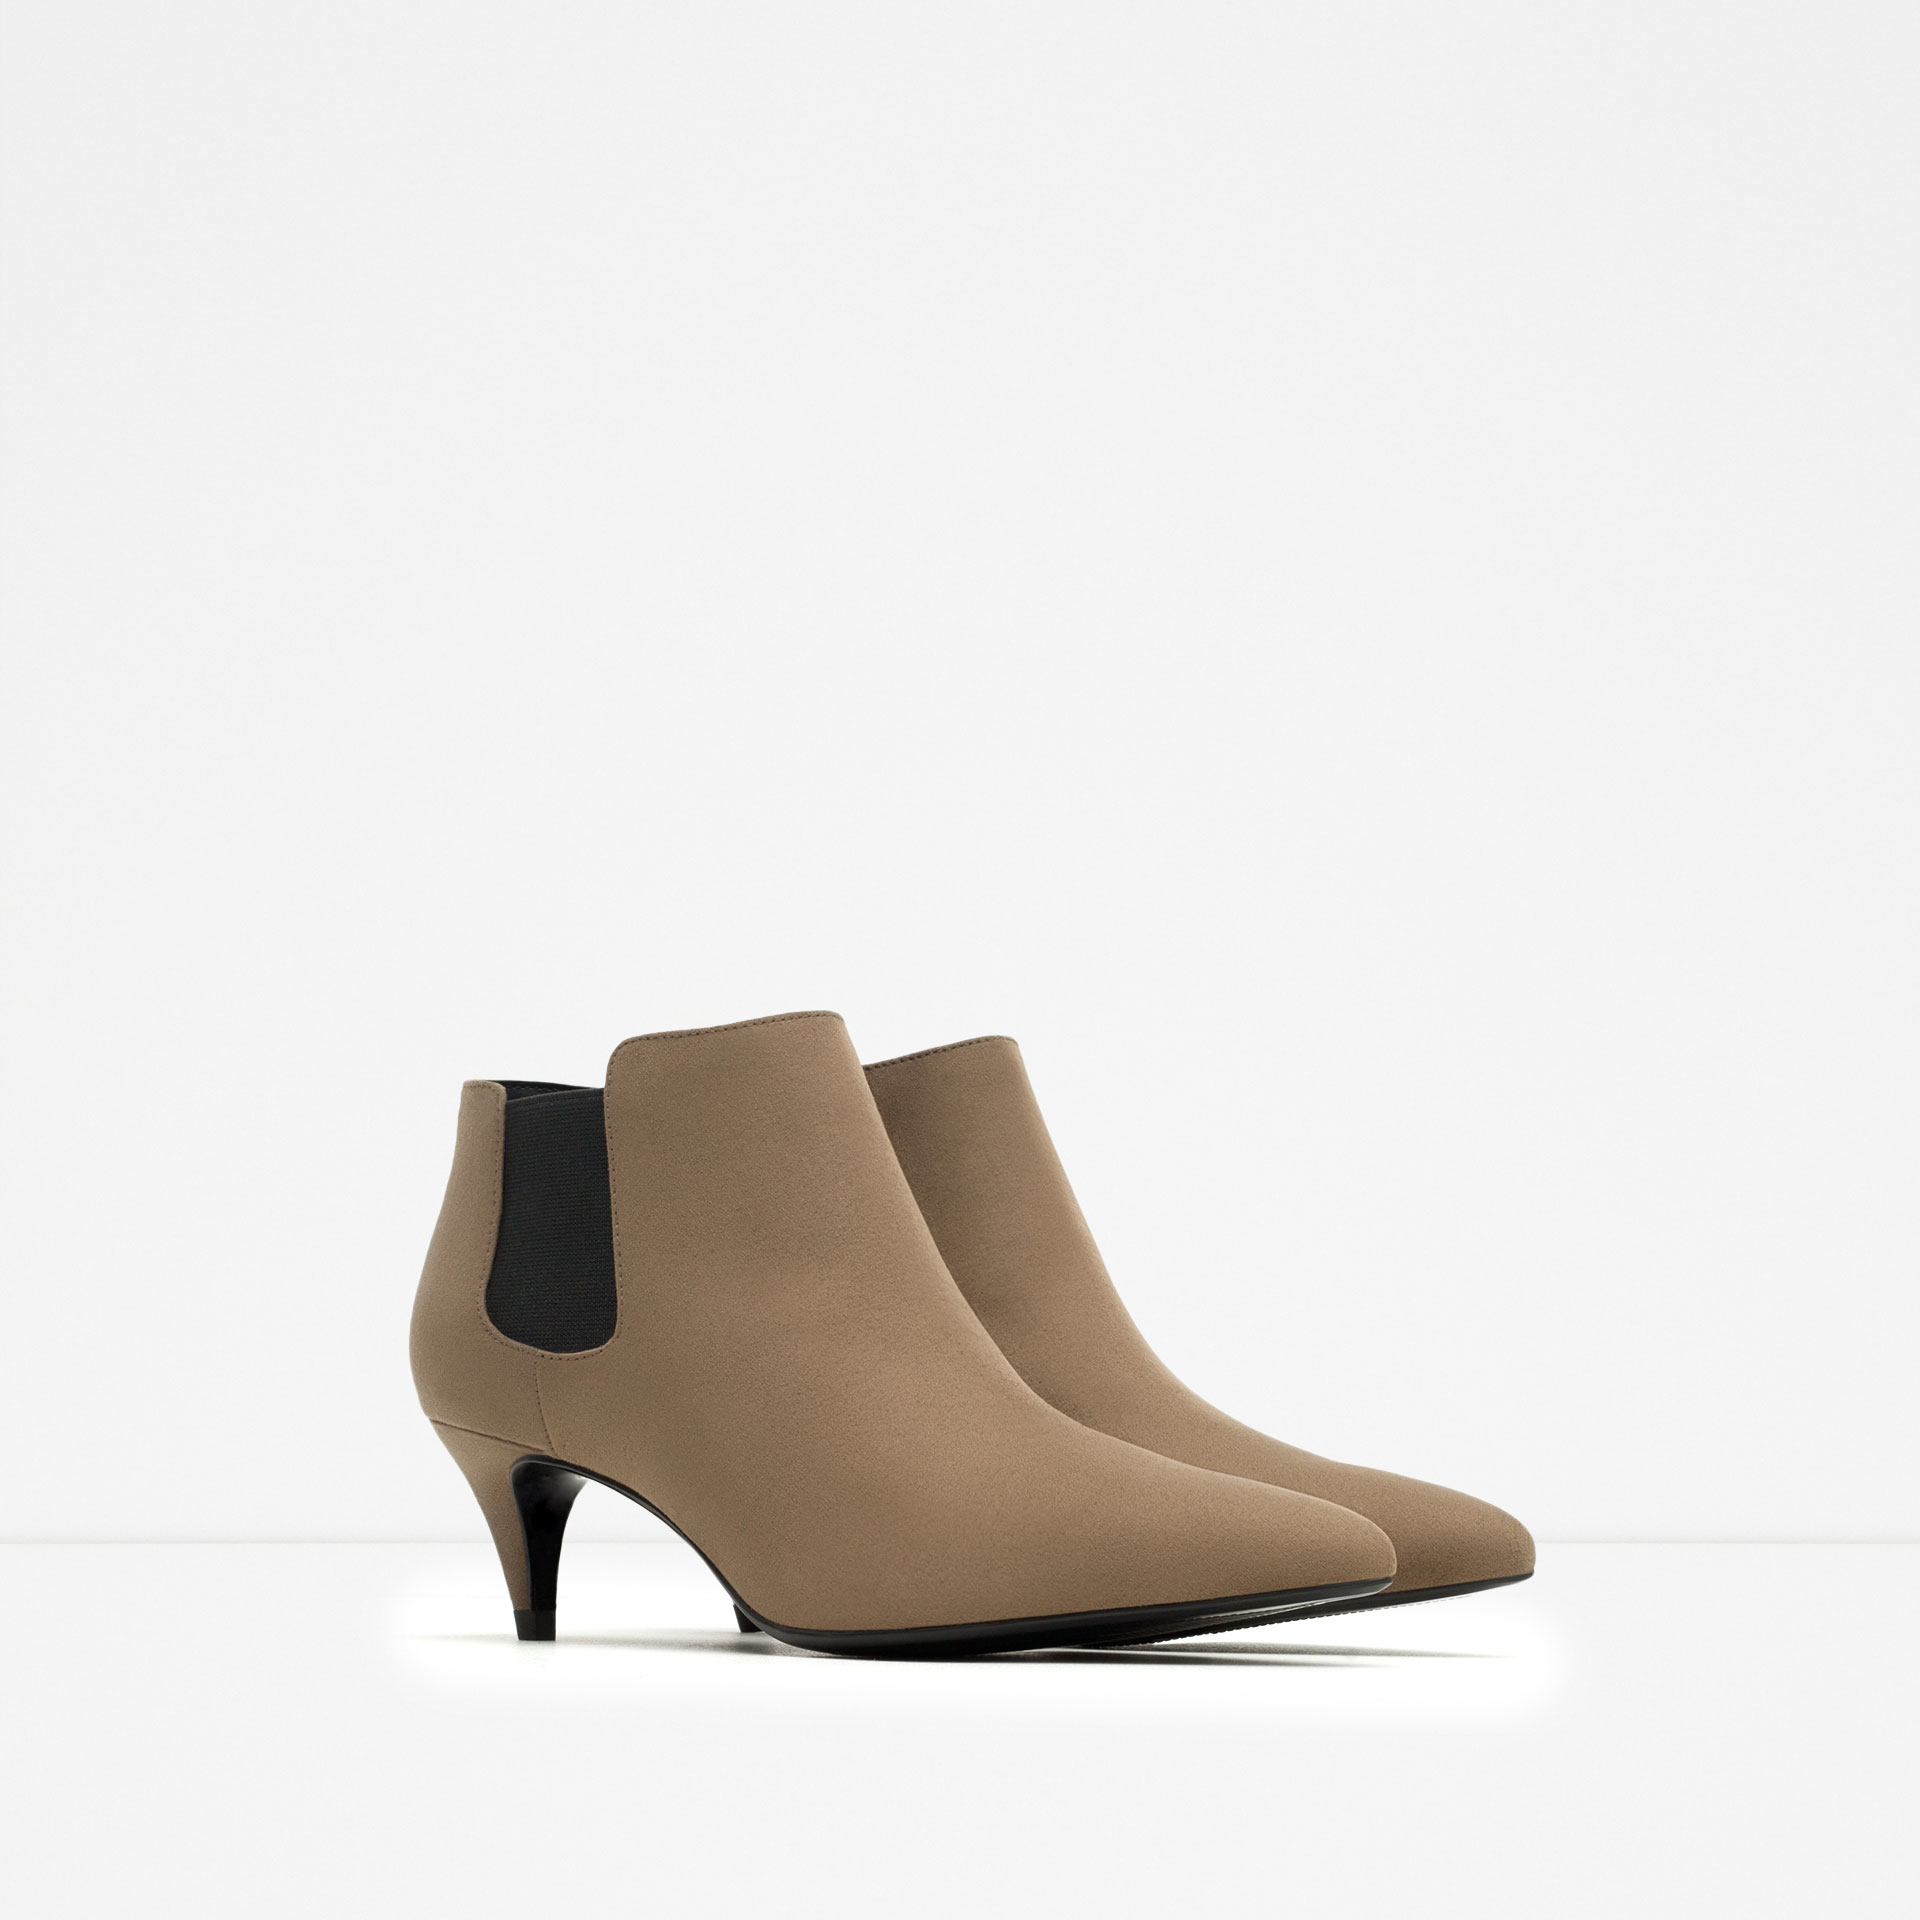 zara mid heel ankle boot in brown lyst